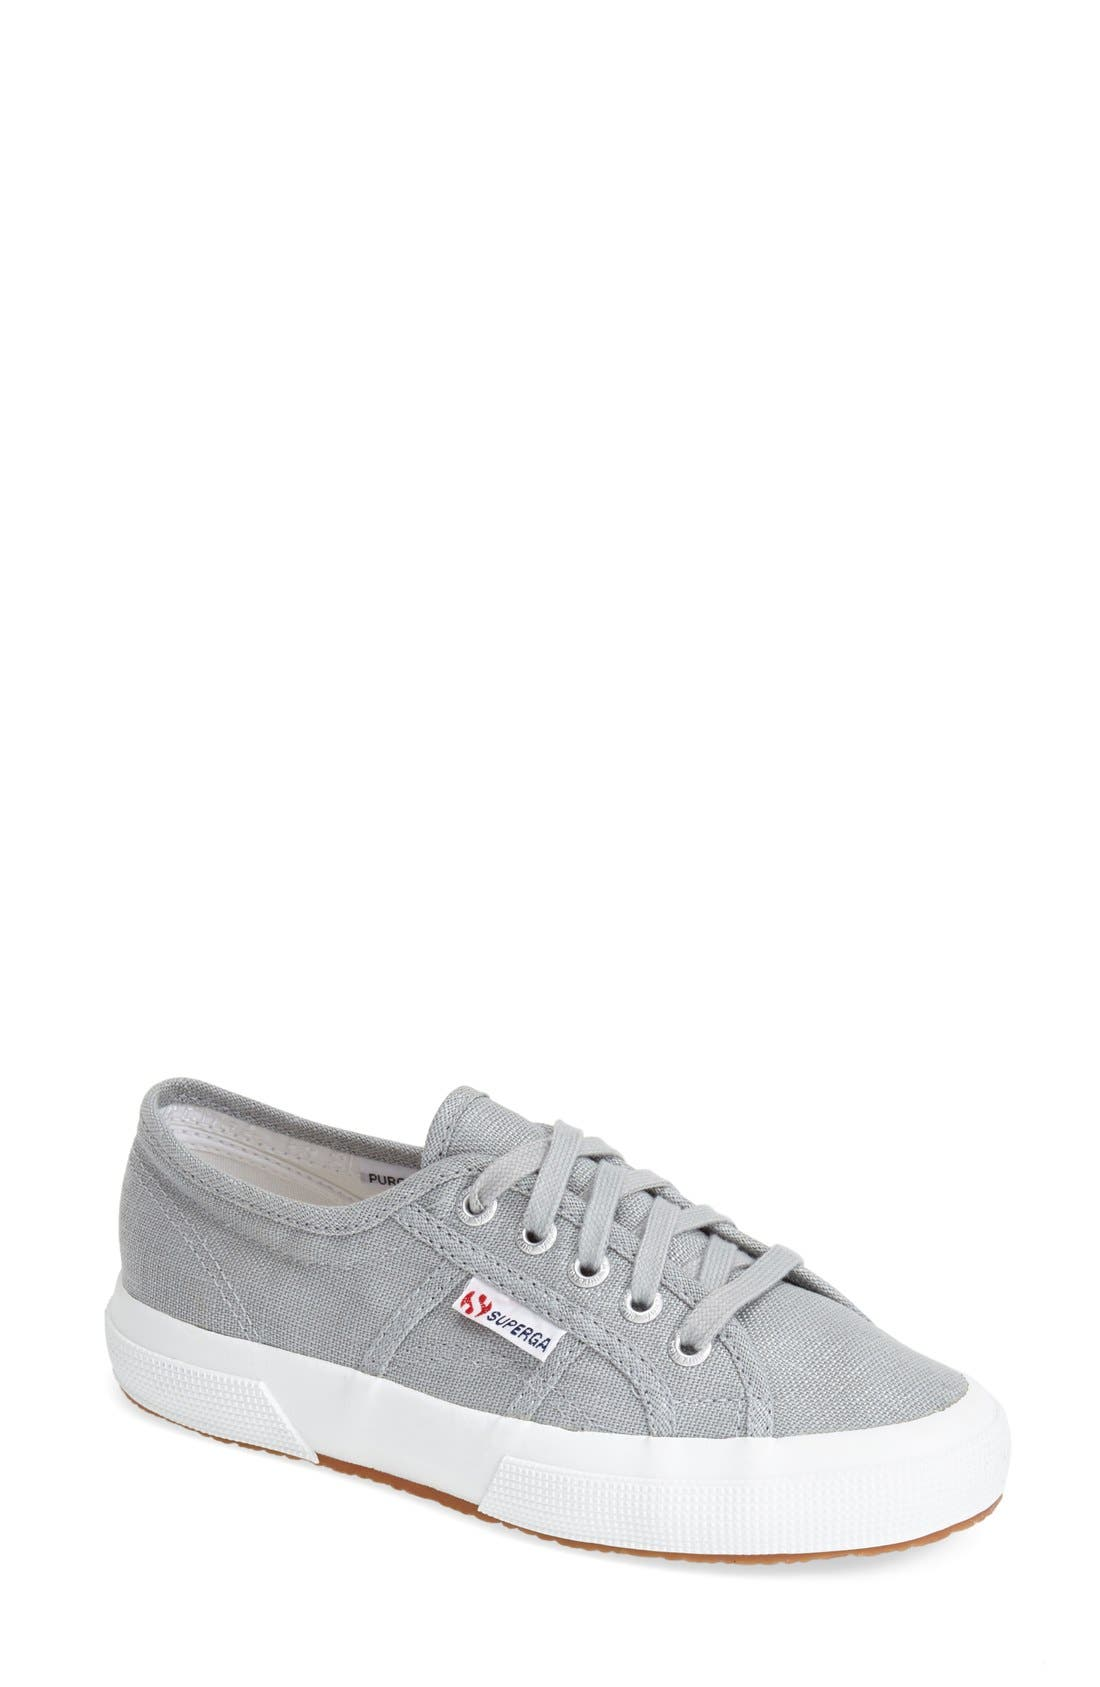 Alternate Image 1 Selected - Superga 'Linu' Linen Sneaker (Women)